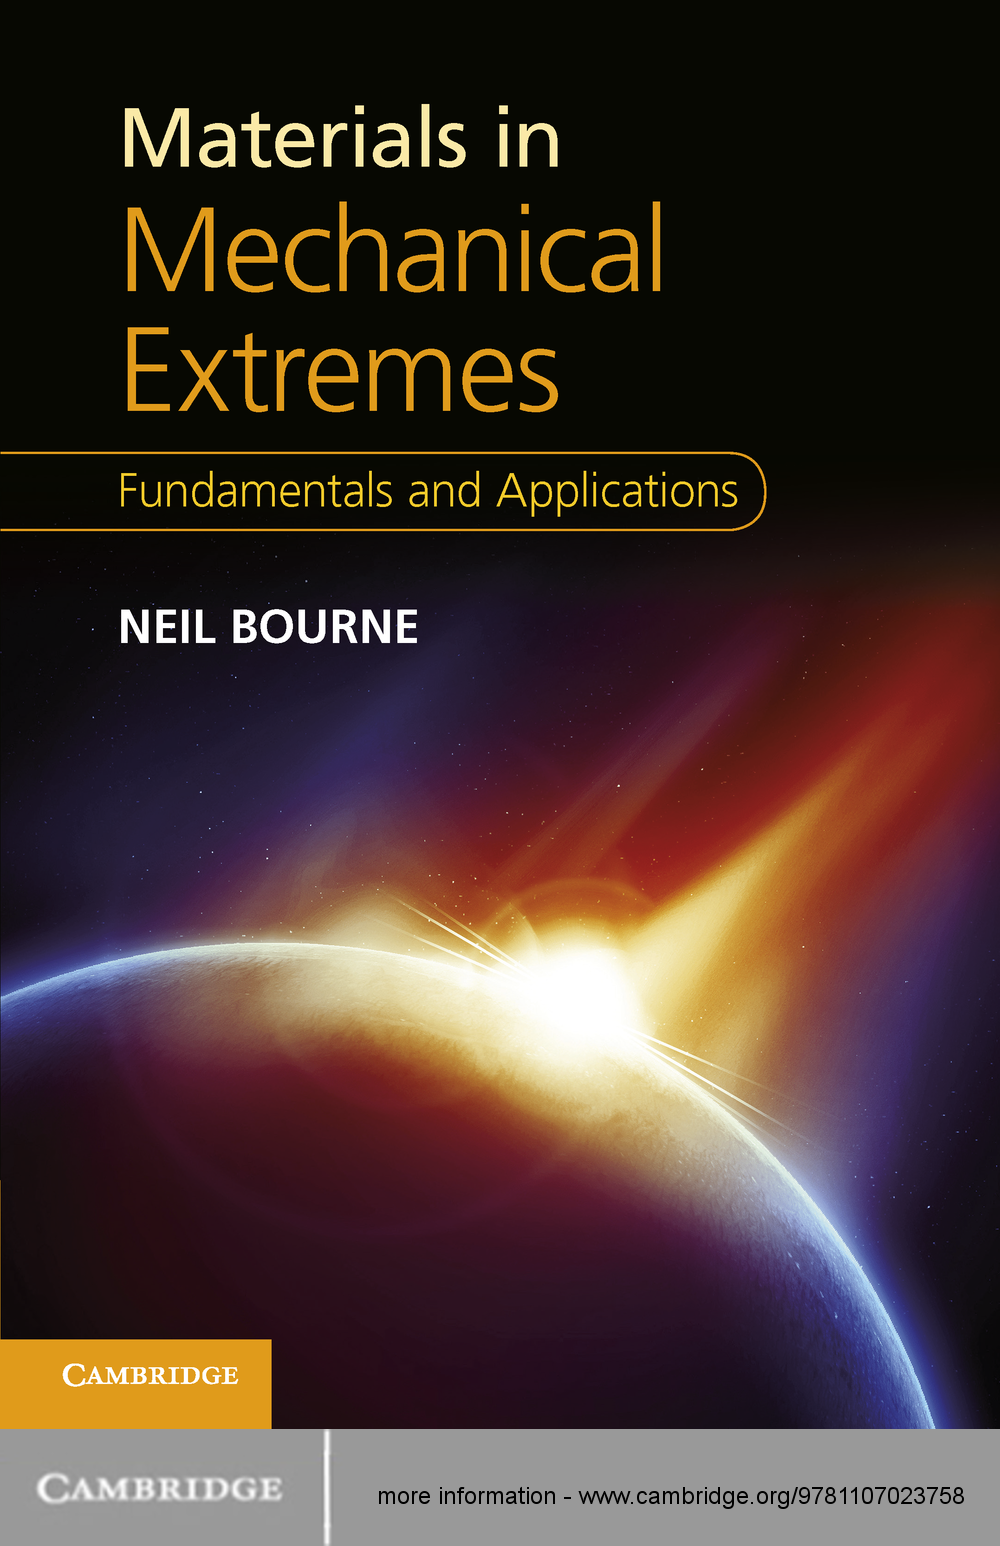 Materials in Mechanical Extremes Fundamentals and Applications